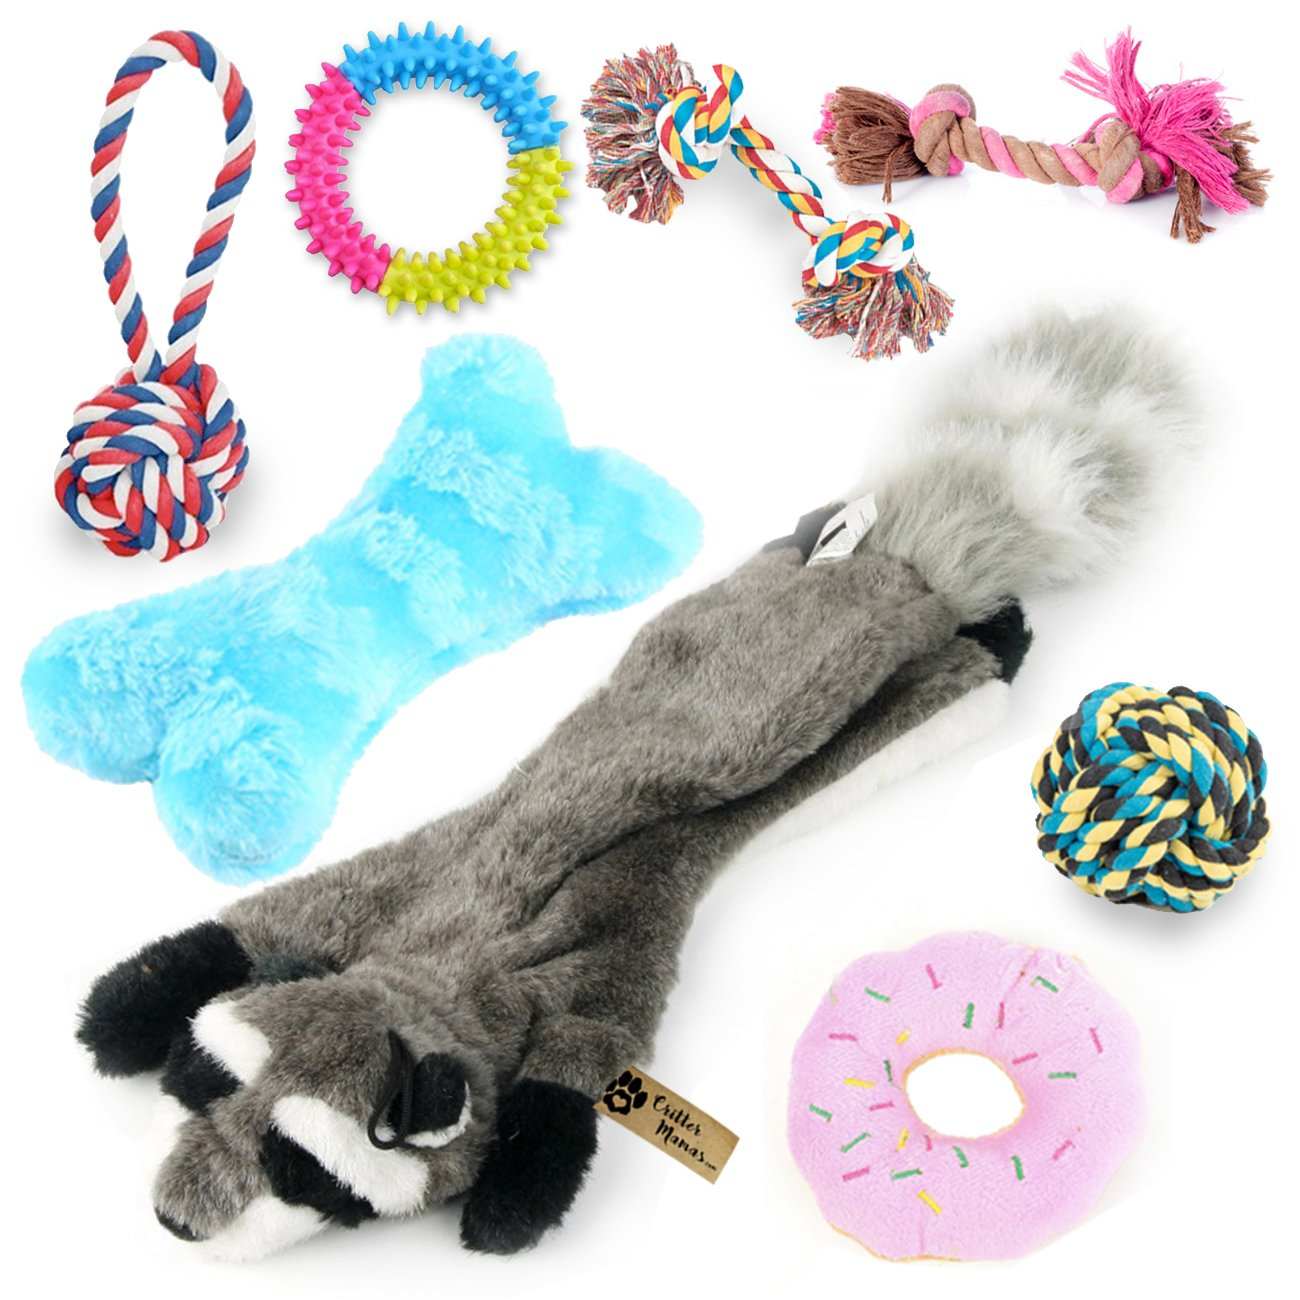 Critter Mamas Puppy Chew Toys and Small Dog Toy Set (8 Pack) -Natural Cotton Dog Rope Toys for Puppy Teething and Dental Cleaning -No Stuffing Plush Squeaker Toy -Great New Puppy Starter Kit